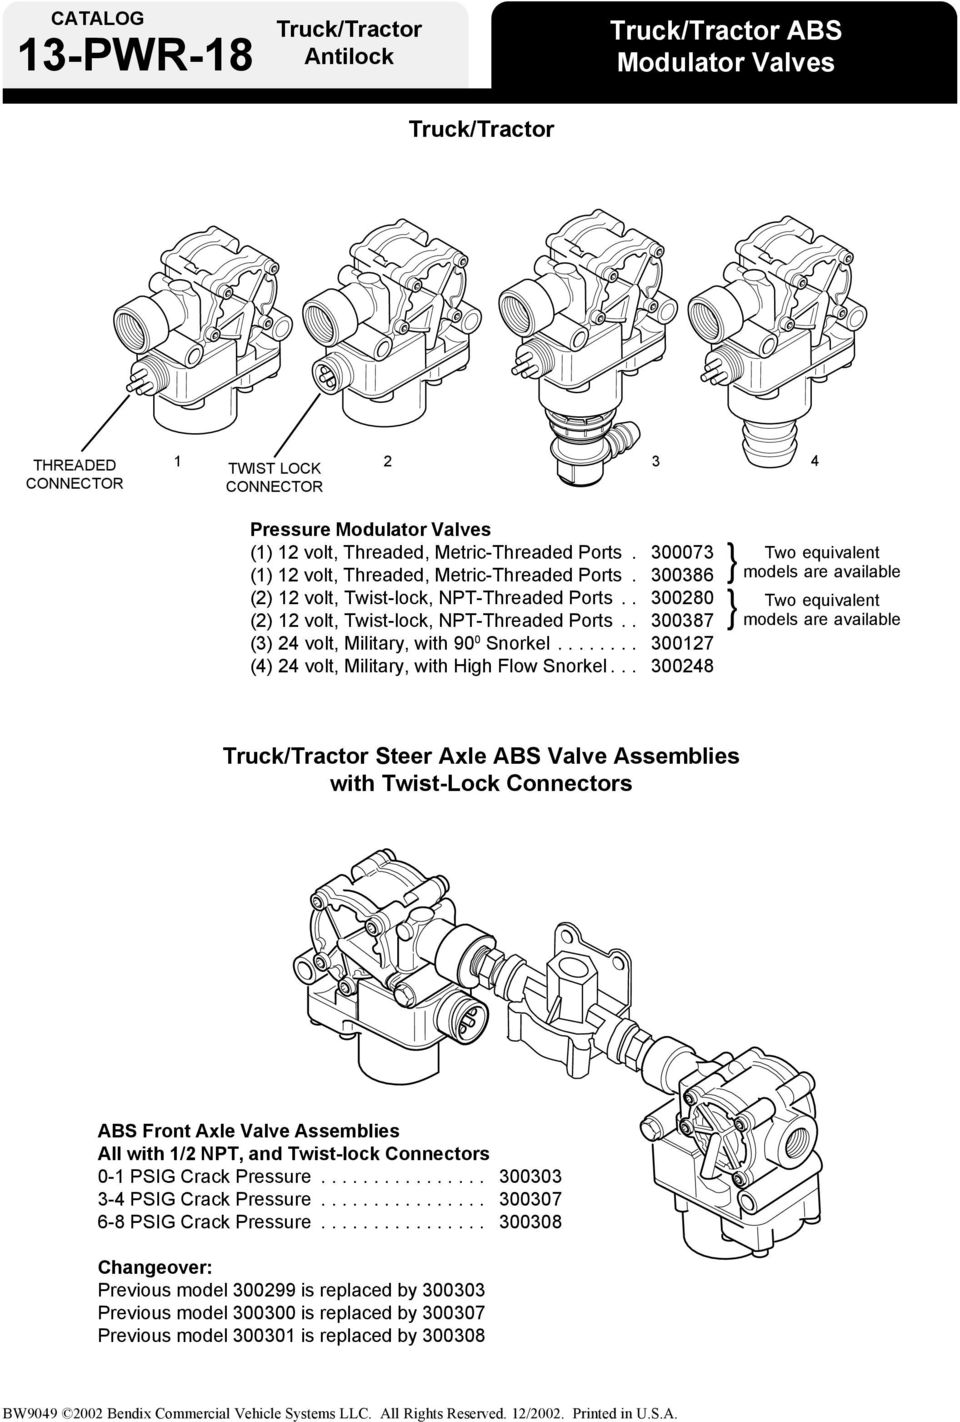 Bendix ABS for Power Vehicles - PDF